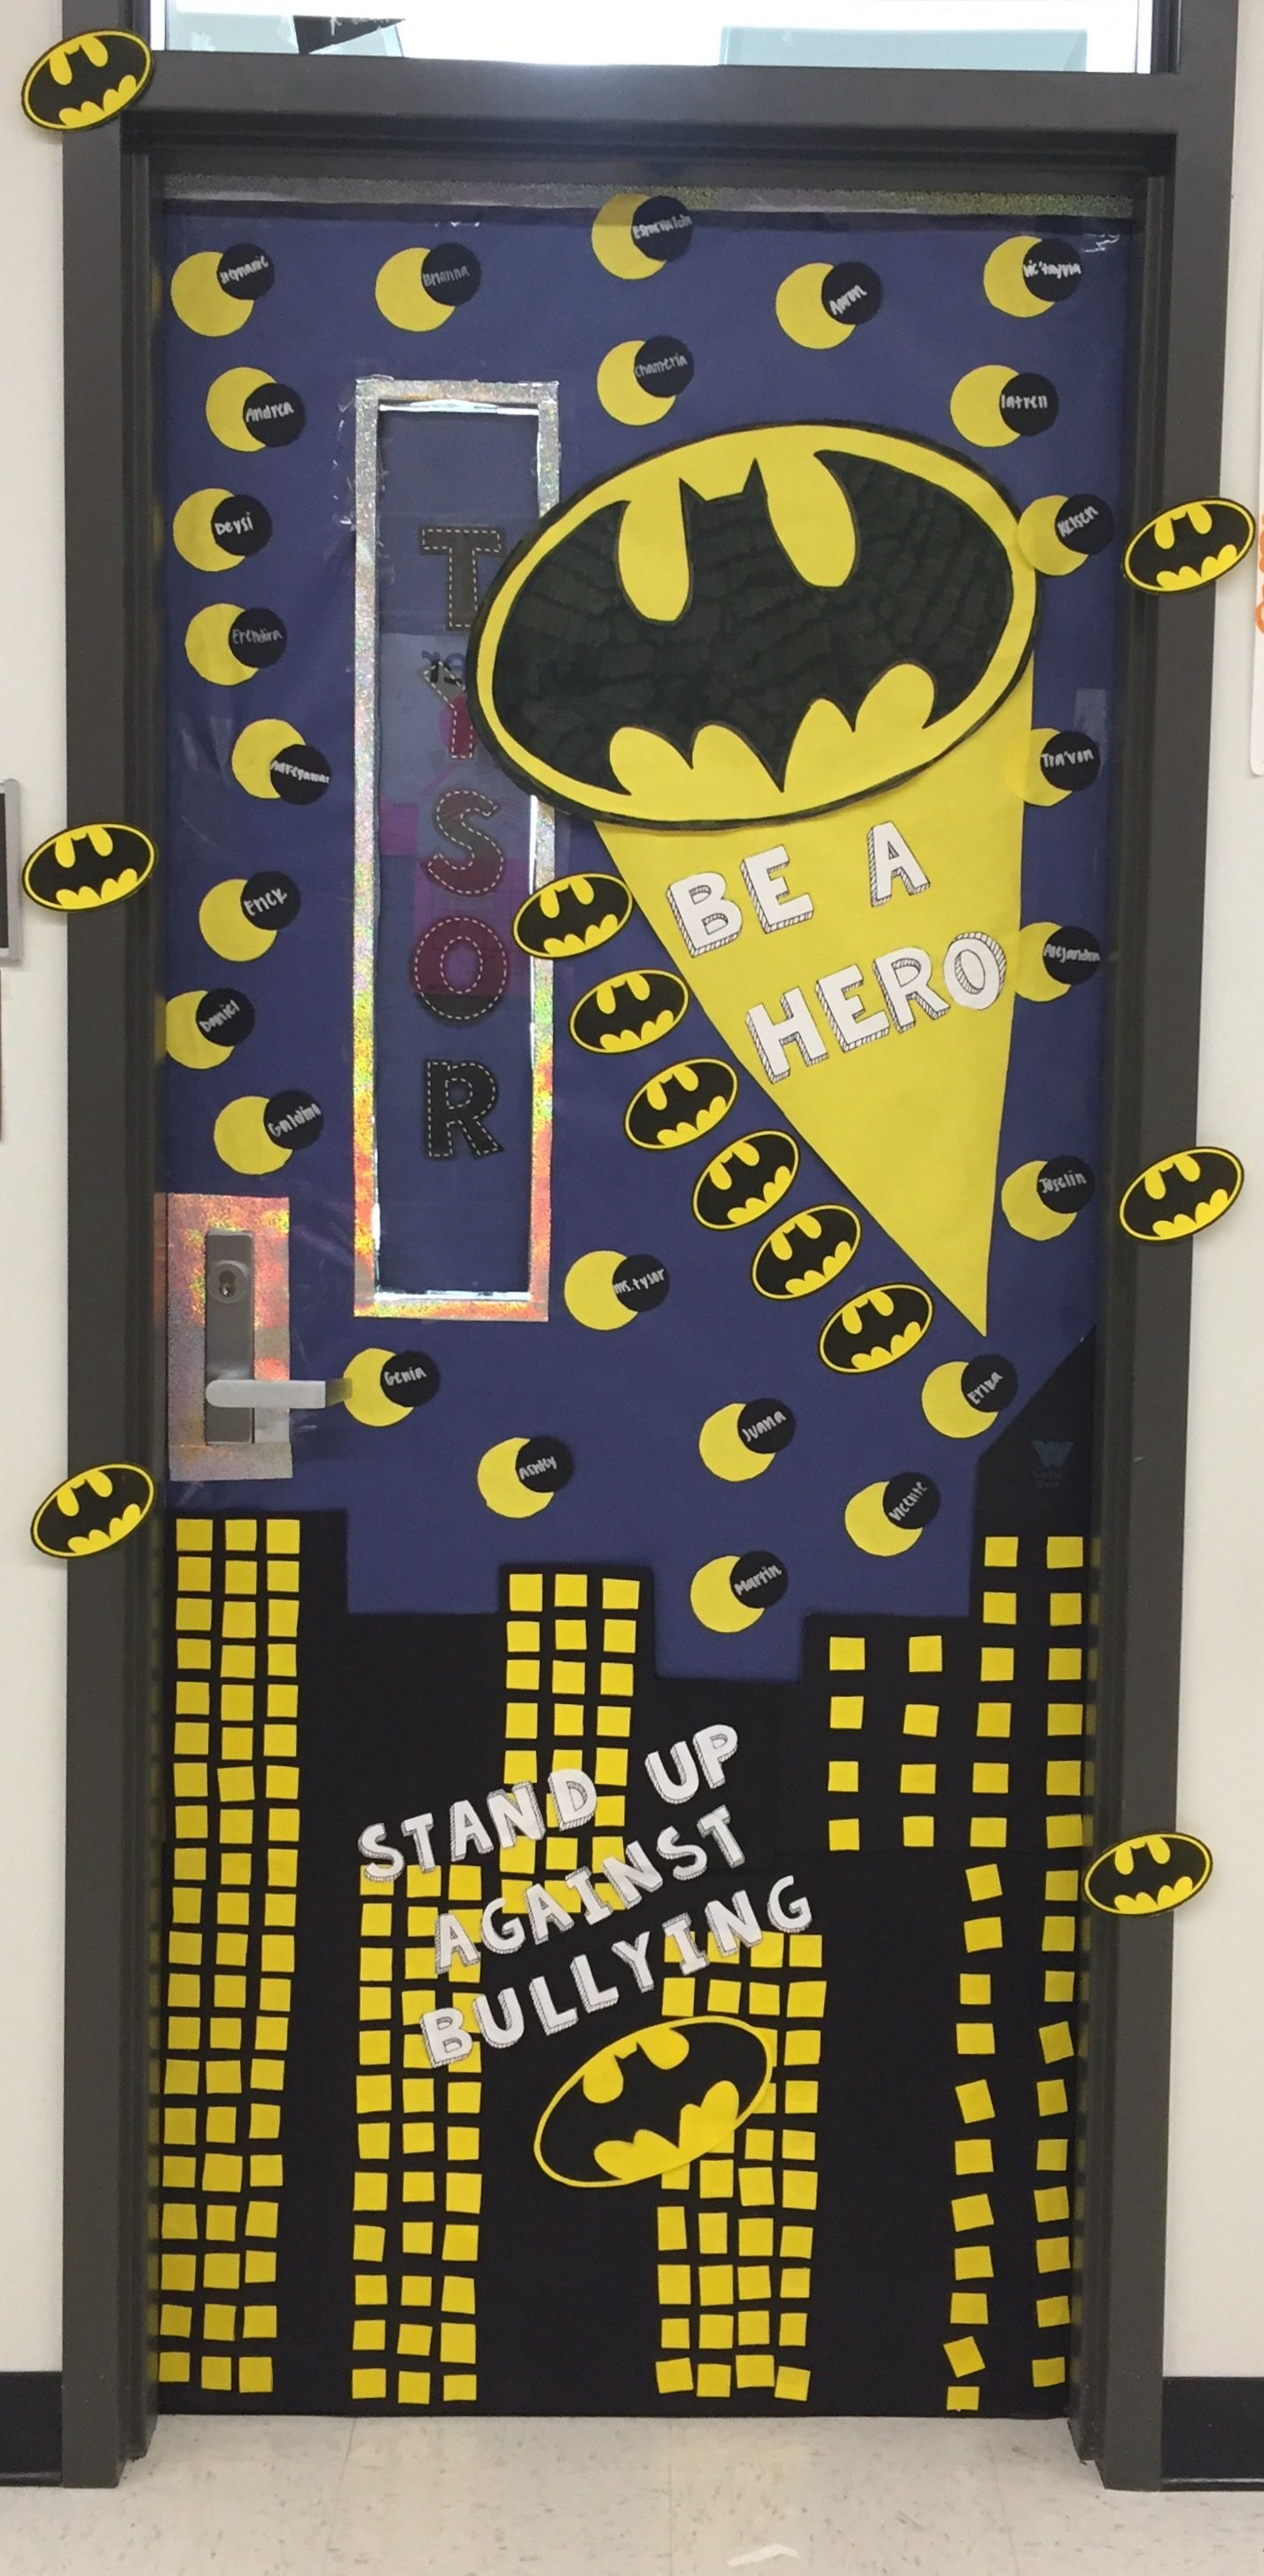 Anti bullying week door decoration Batman.